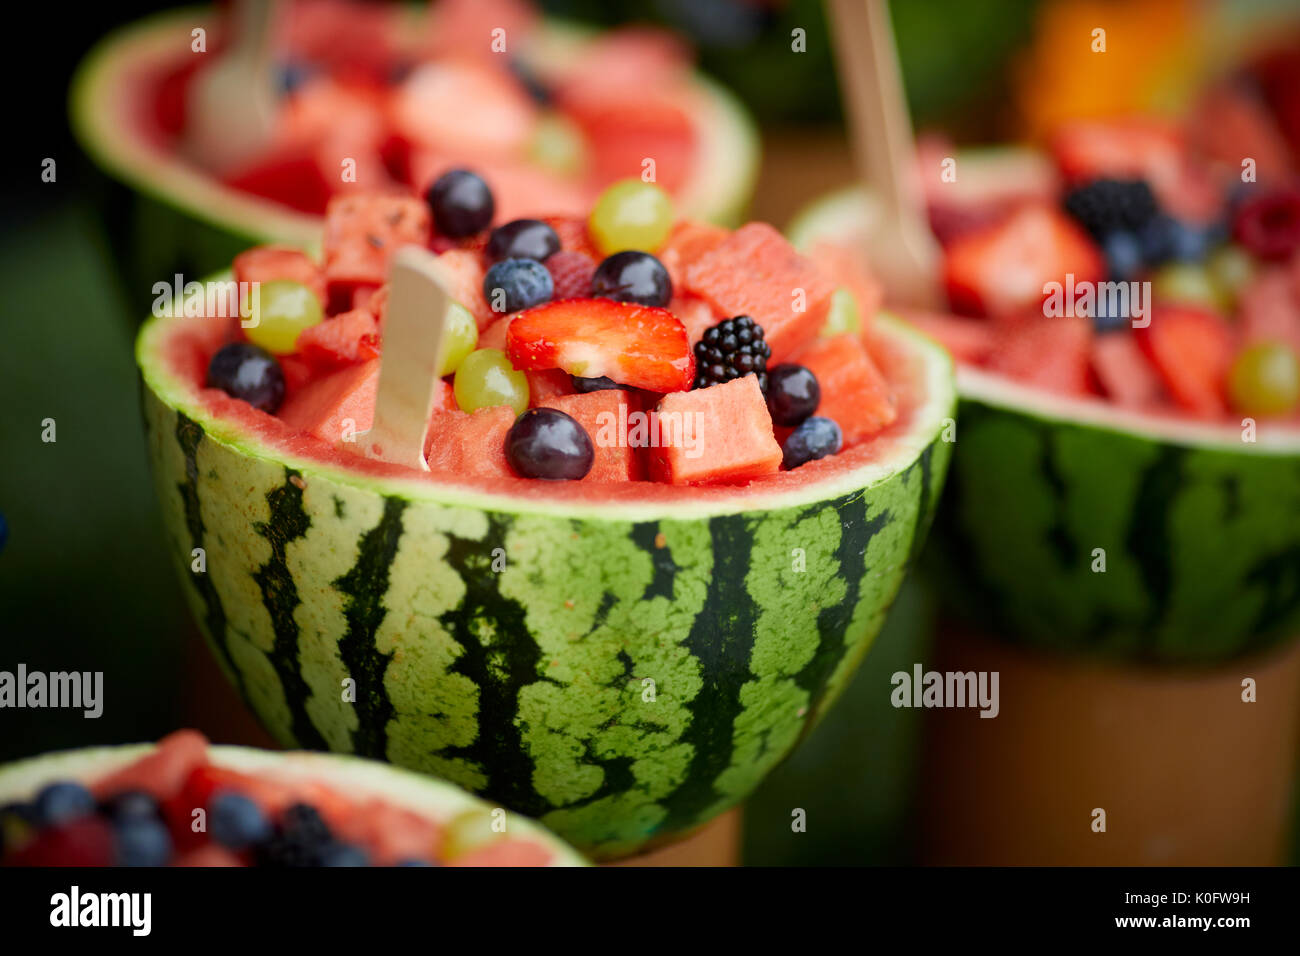 The Lowery Outlet at Salford Quays 'Makers Market' Watermelon fruit bowl - Stock Image